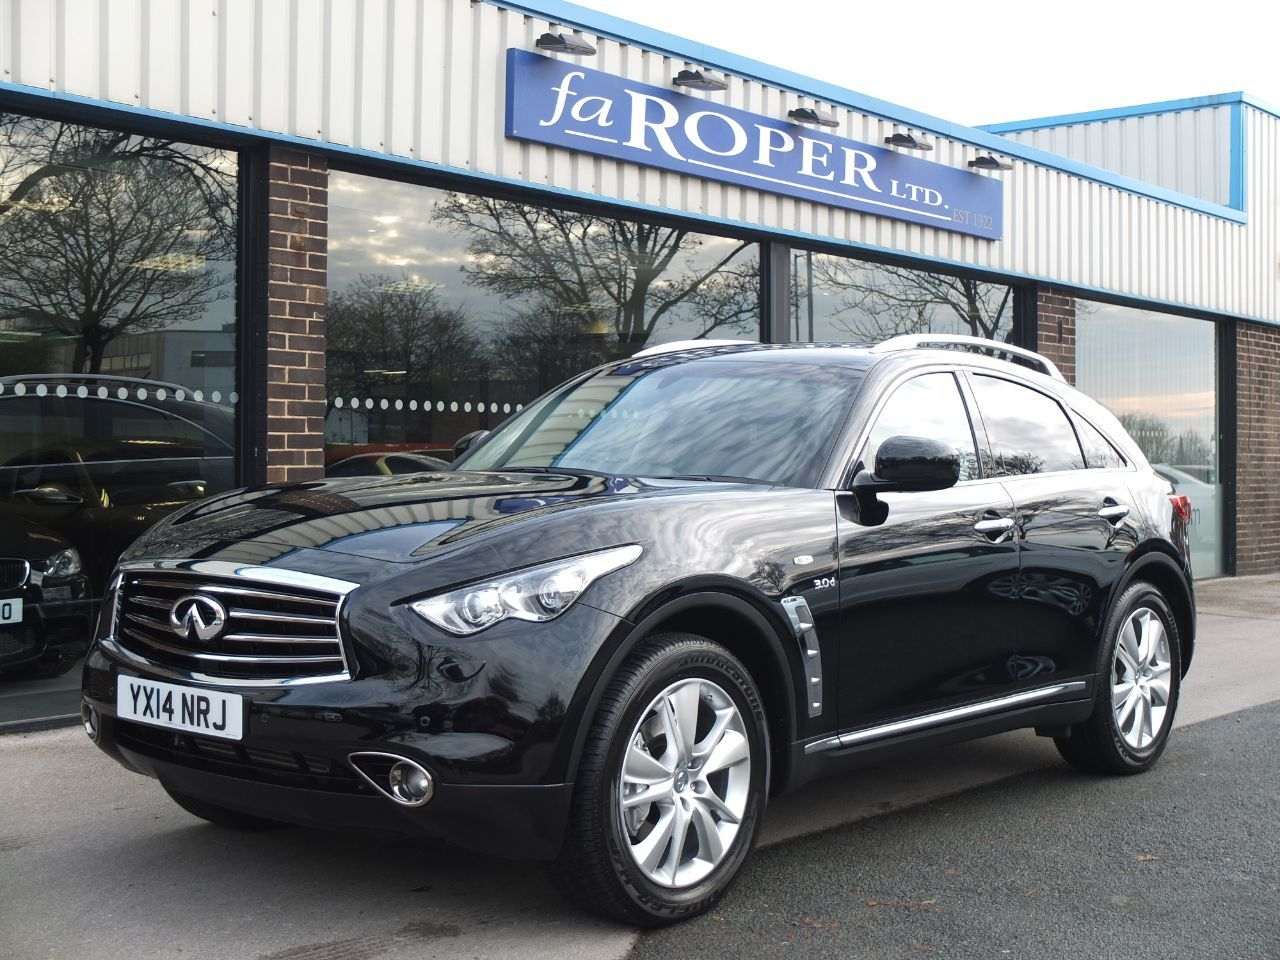 Infiniti Qx70 3.0d GT Auto (Multimedia Pack) Four Wheel Drive Diesel BlackInfiniti Qx70 3.0d GT Auto (Multimedia Pack) Four Wheel Drive Diesel Black at fa Roper Ltd Bradford